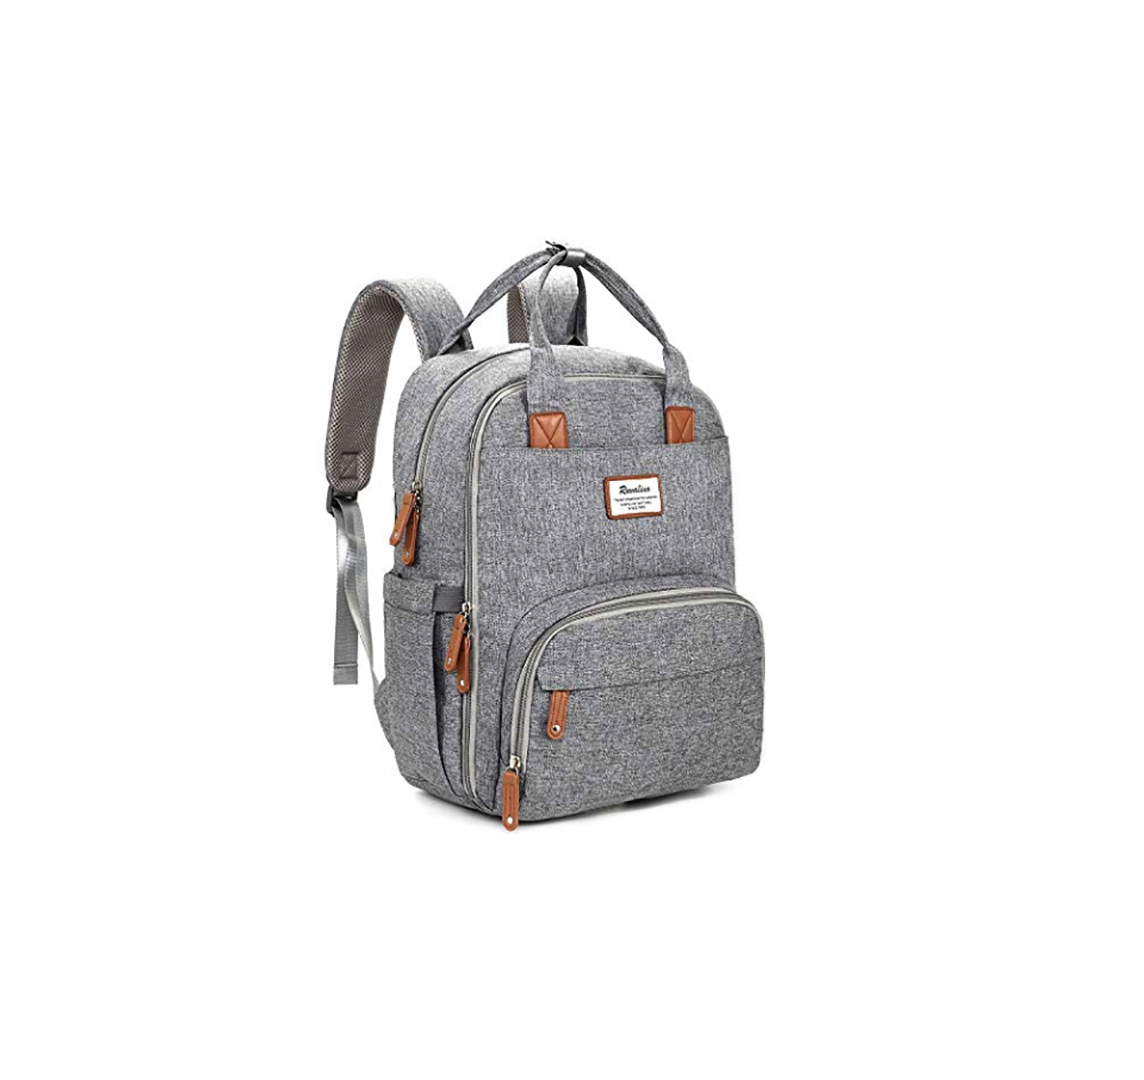 RUVALINO Diaper Bag Backpack